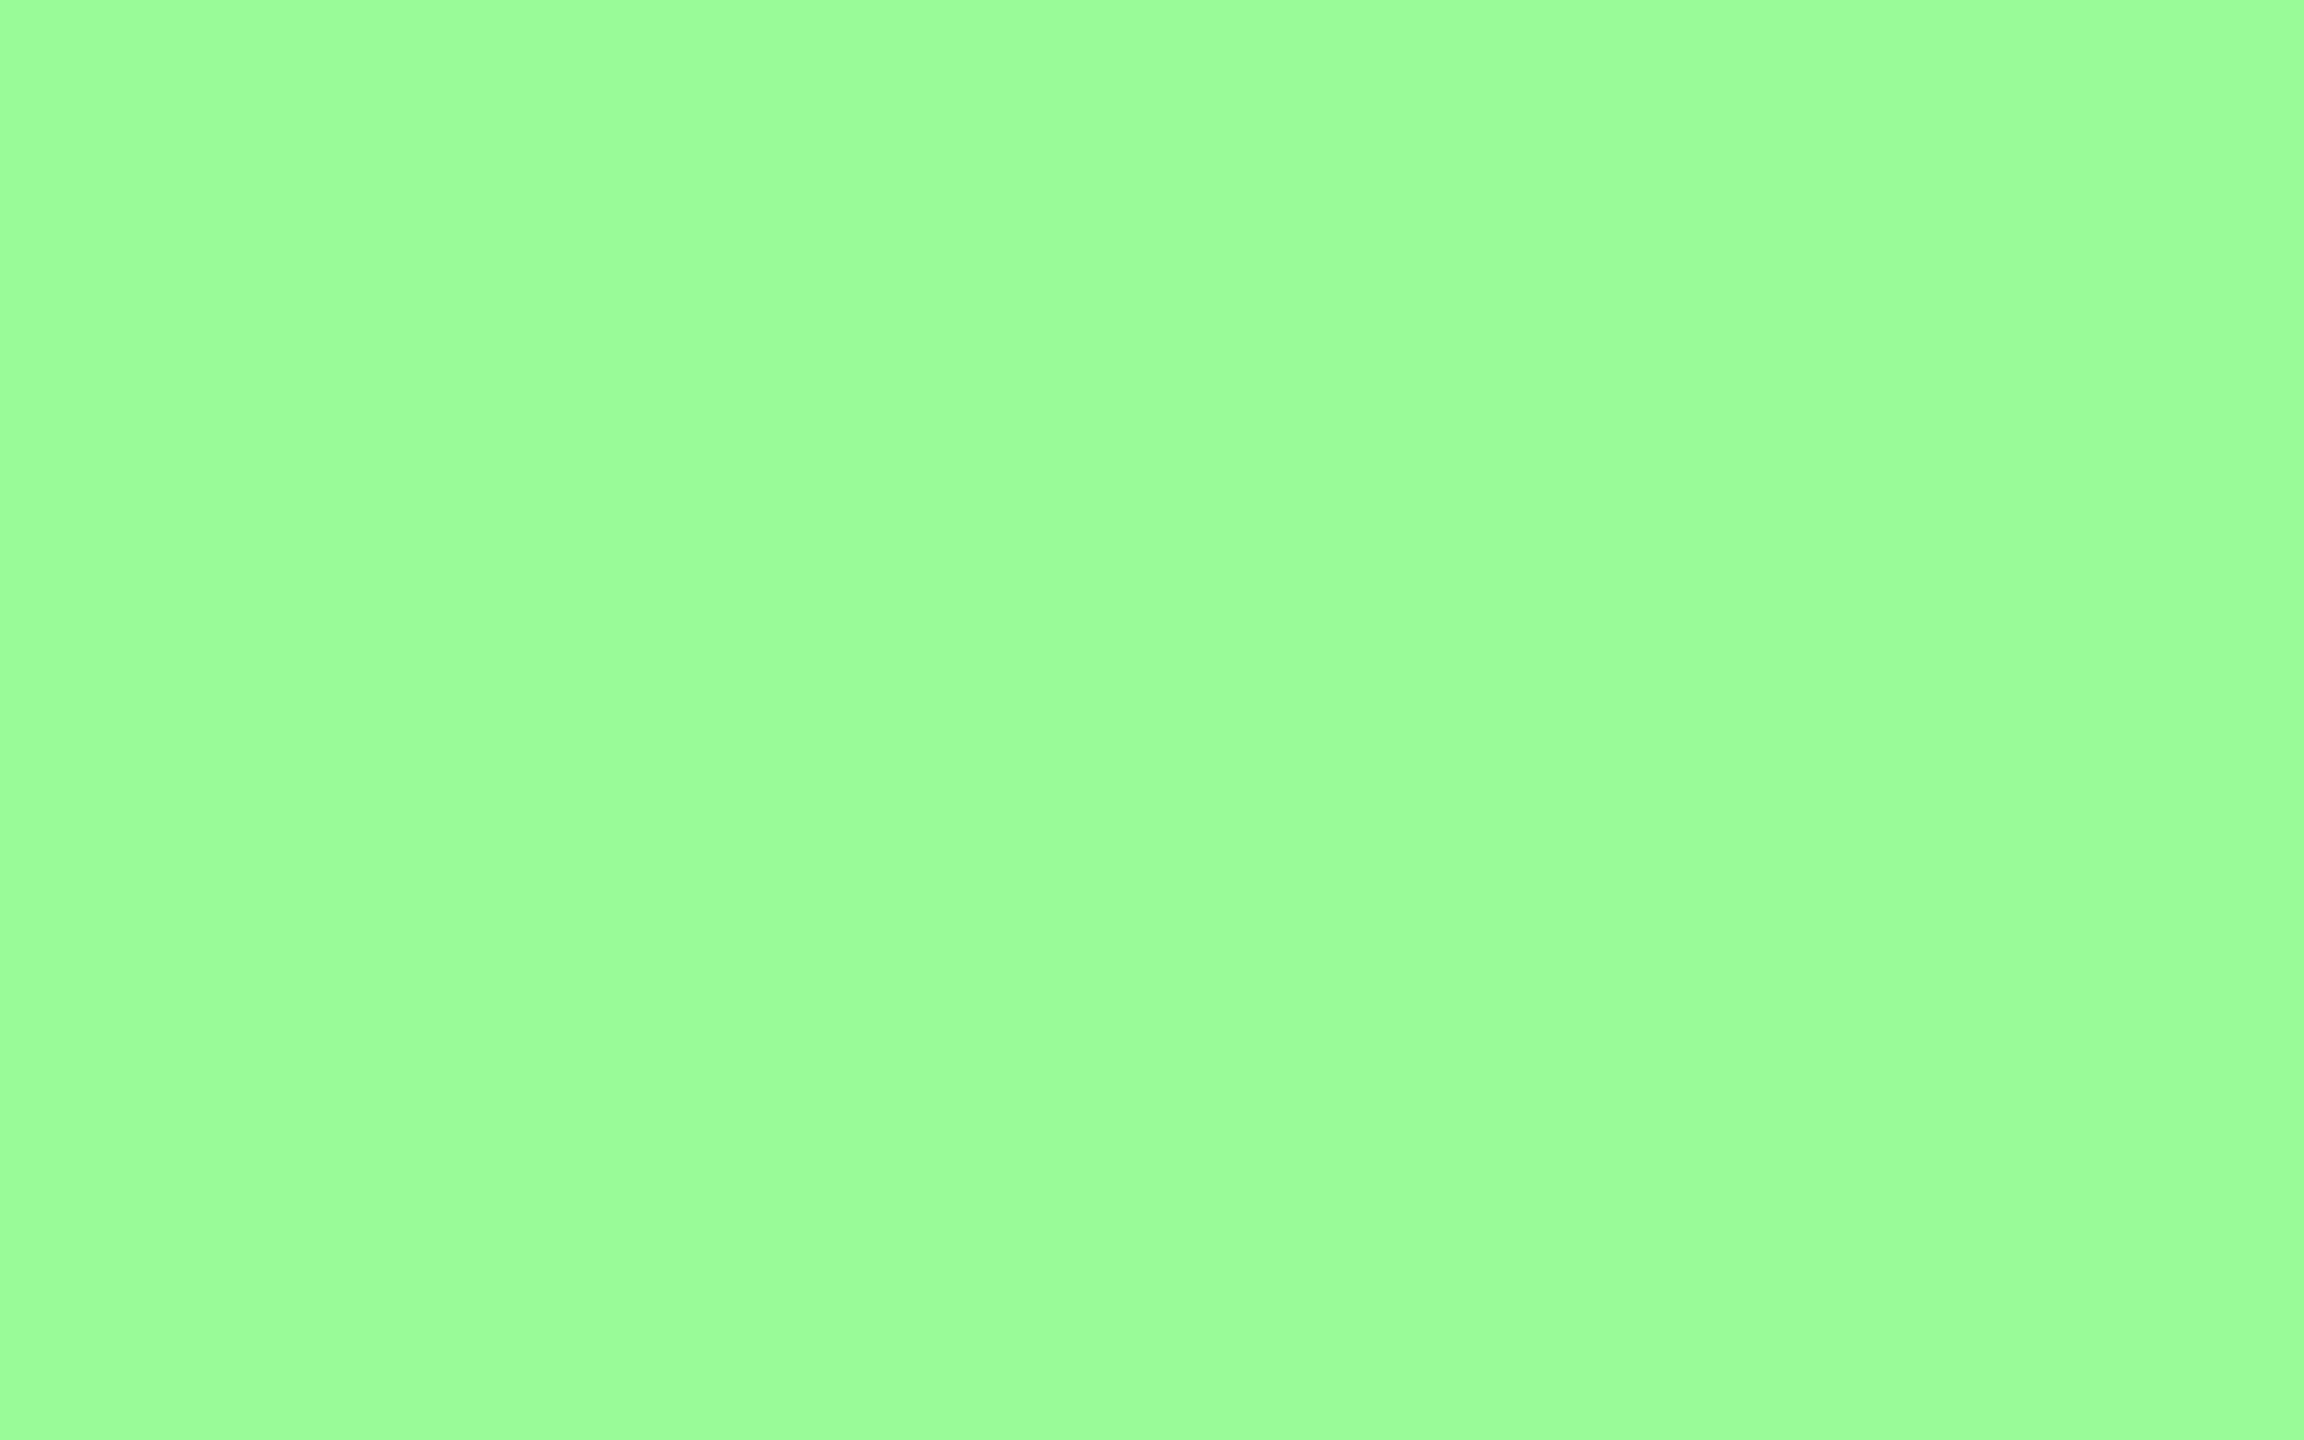 2304x1440 Pale Green Solid Color Background